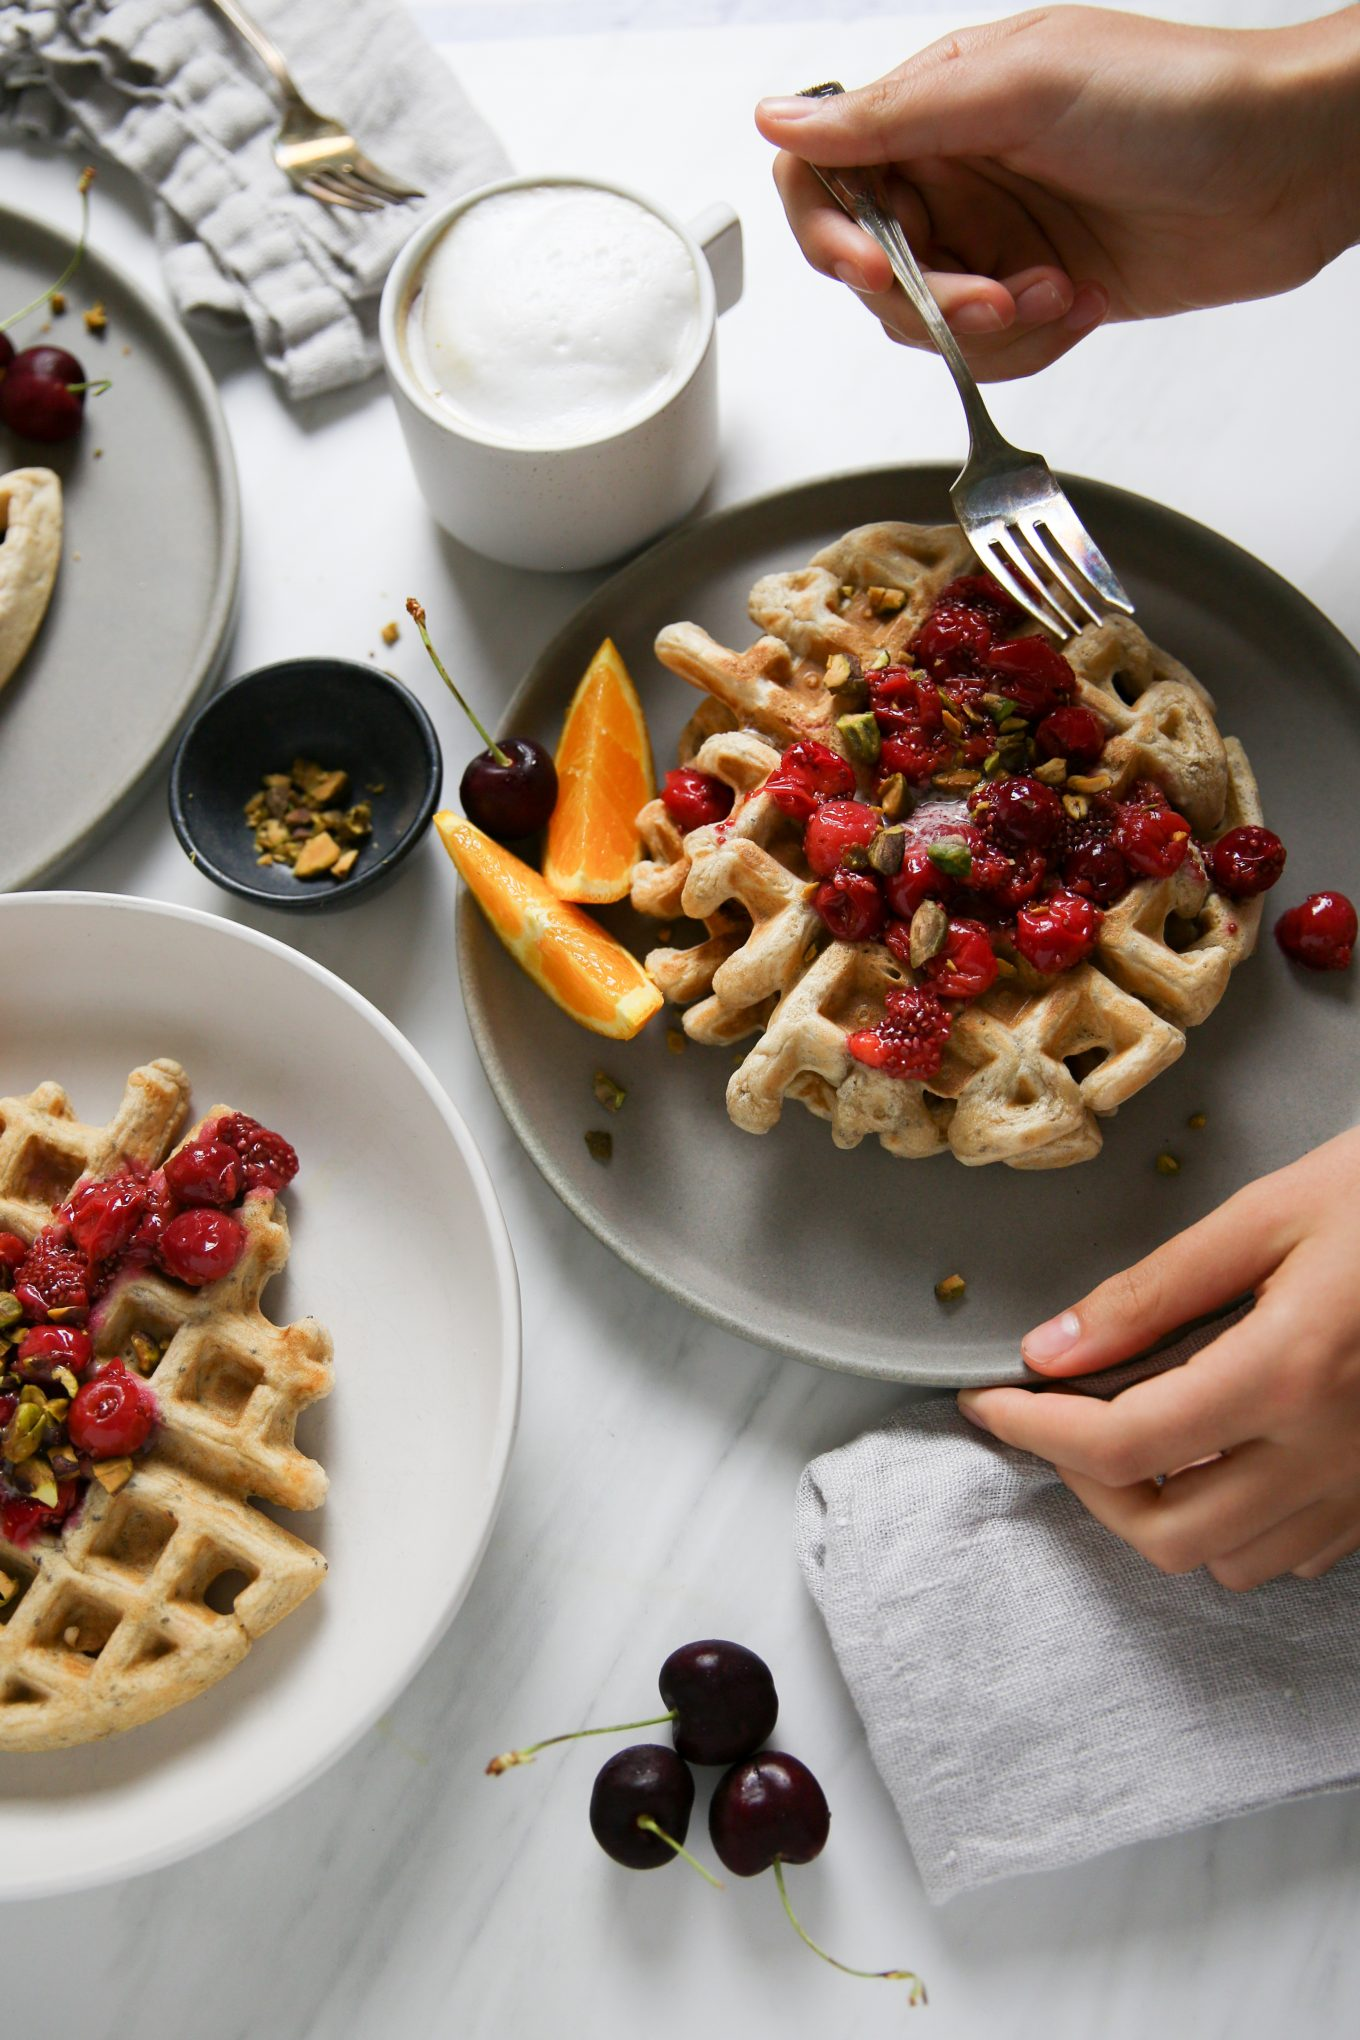 Homemade waffles with cherries and orange slices